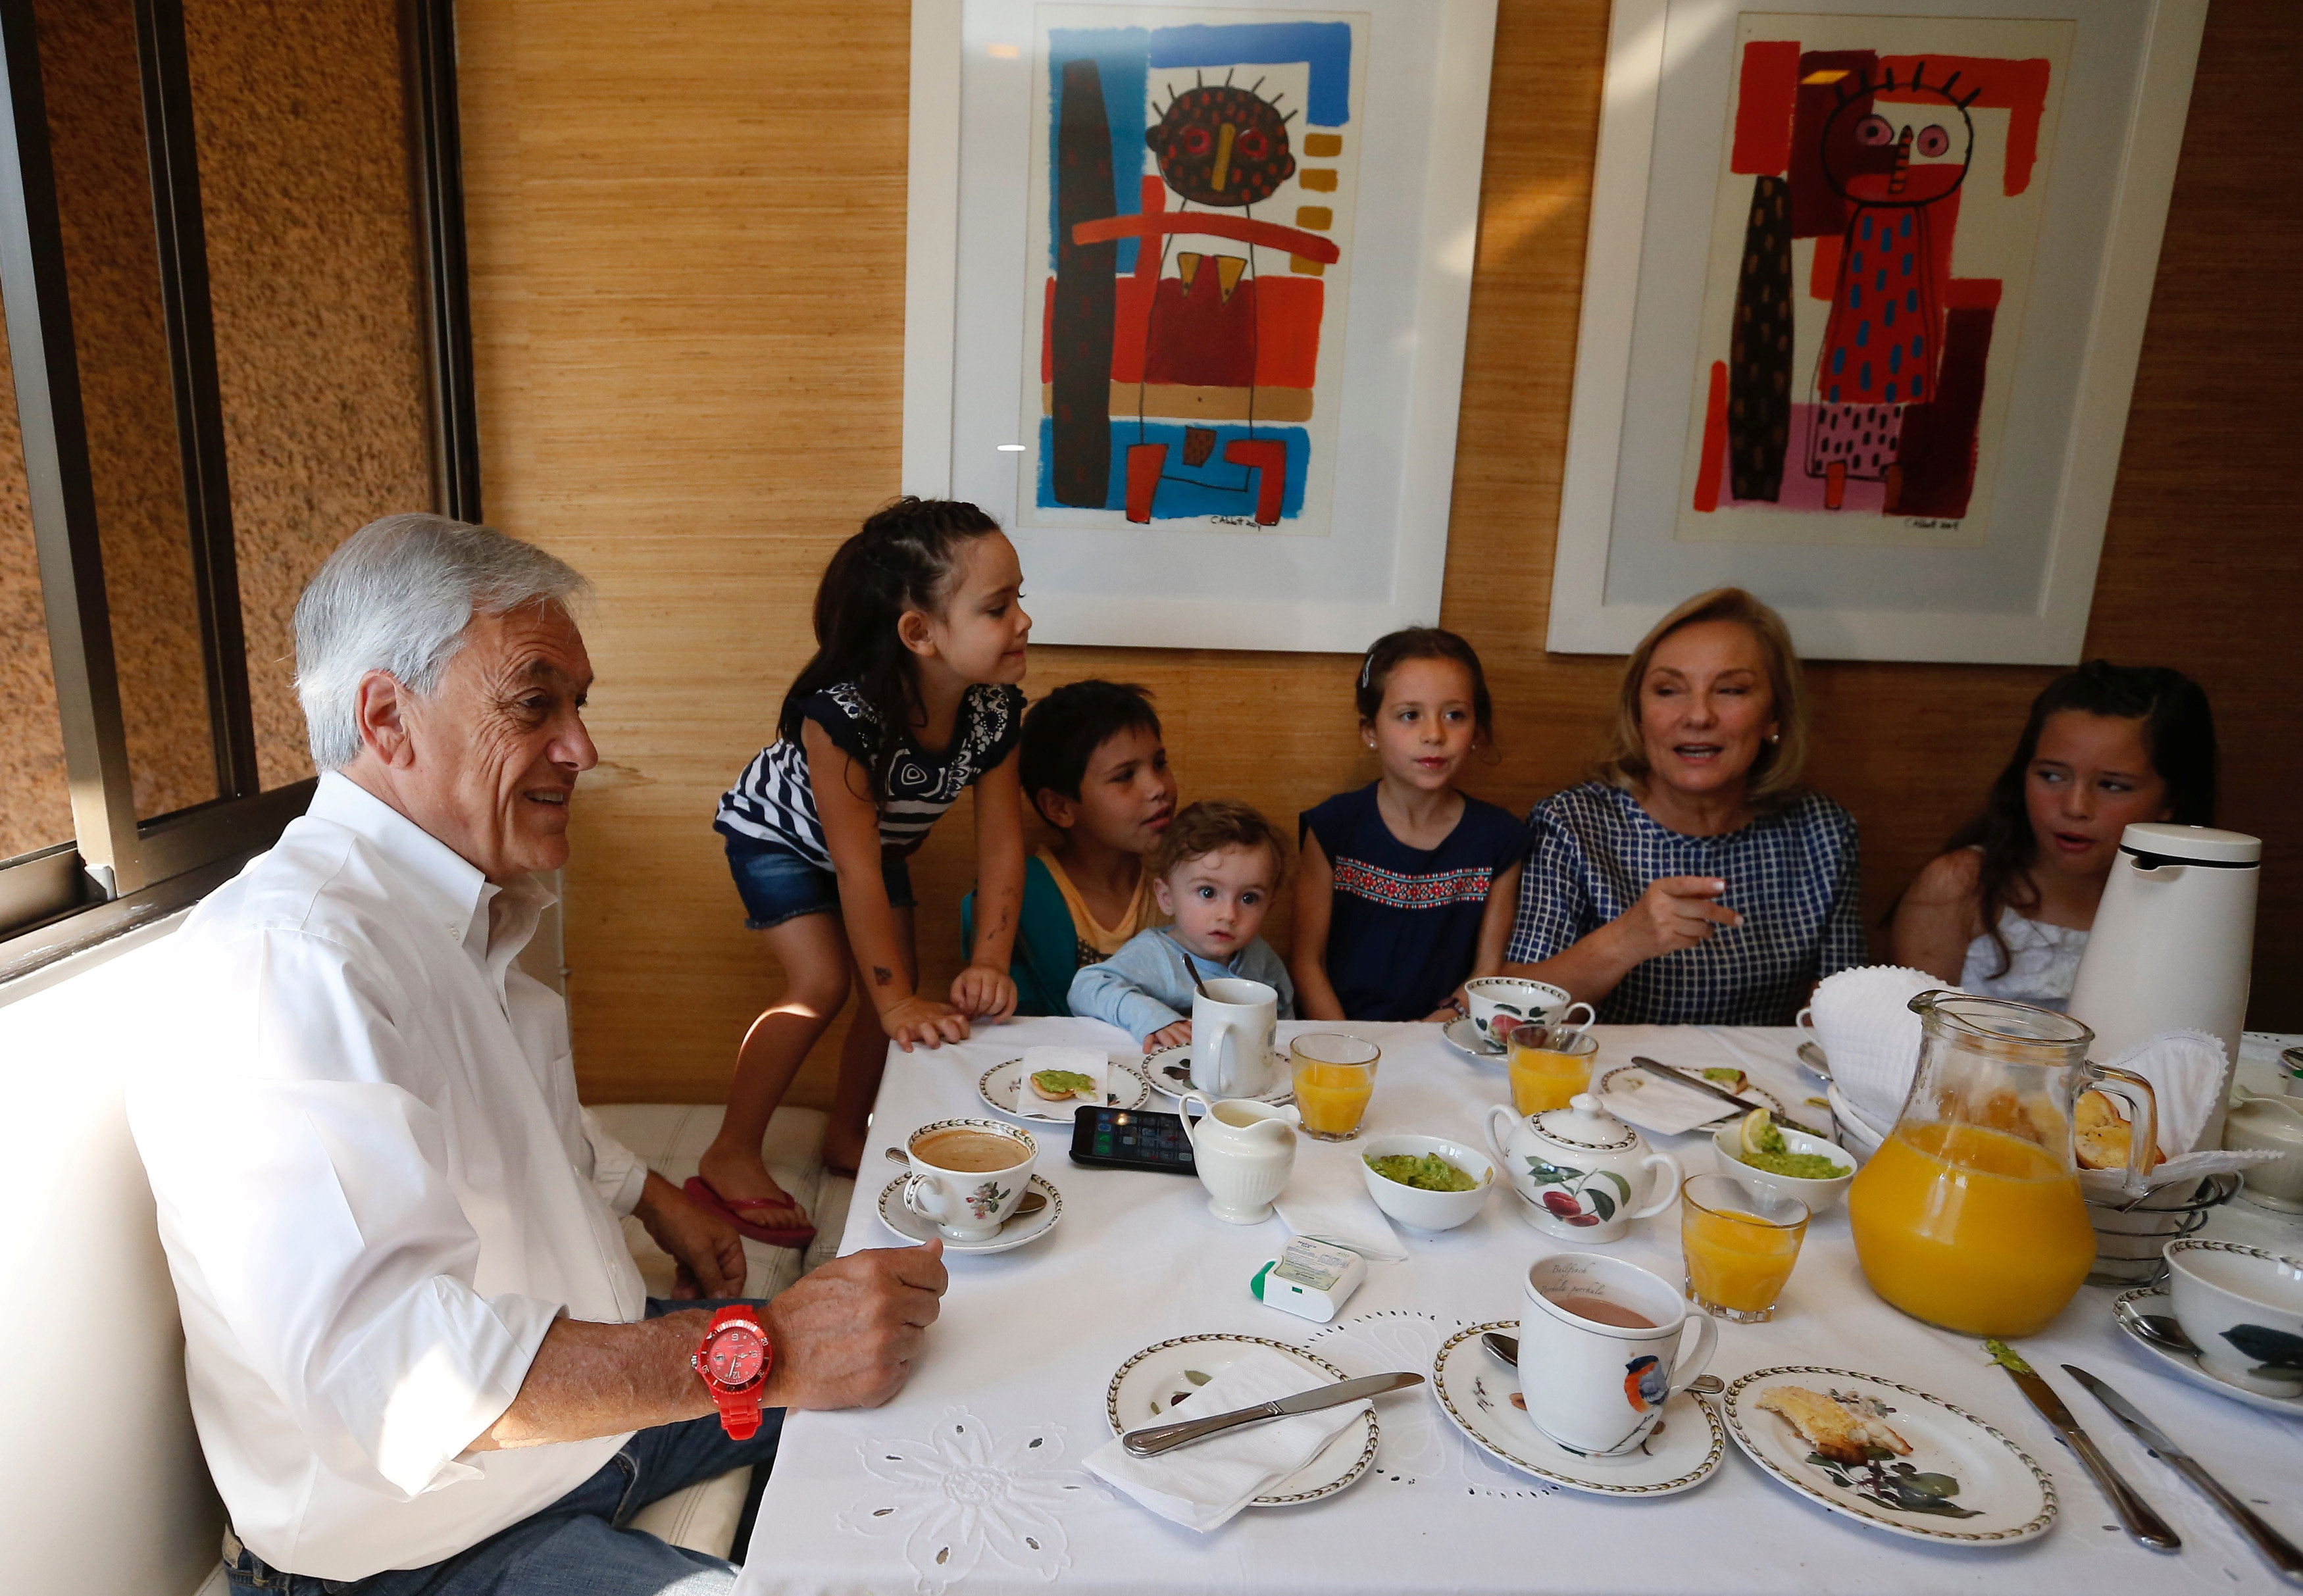 Former leader Pinera seen as favourite as Chileans vote for president